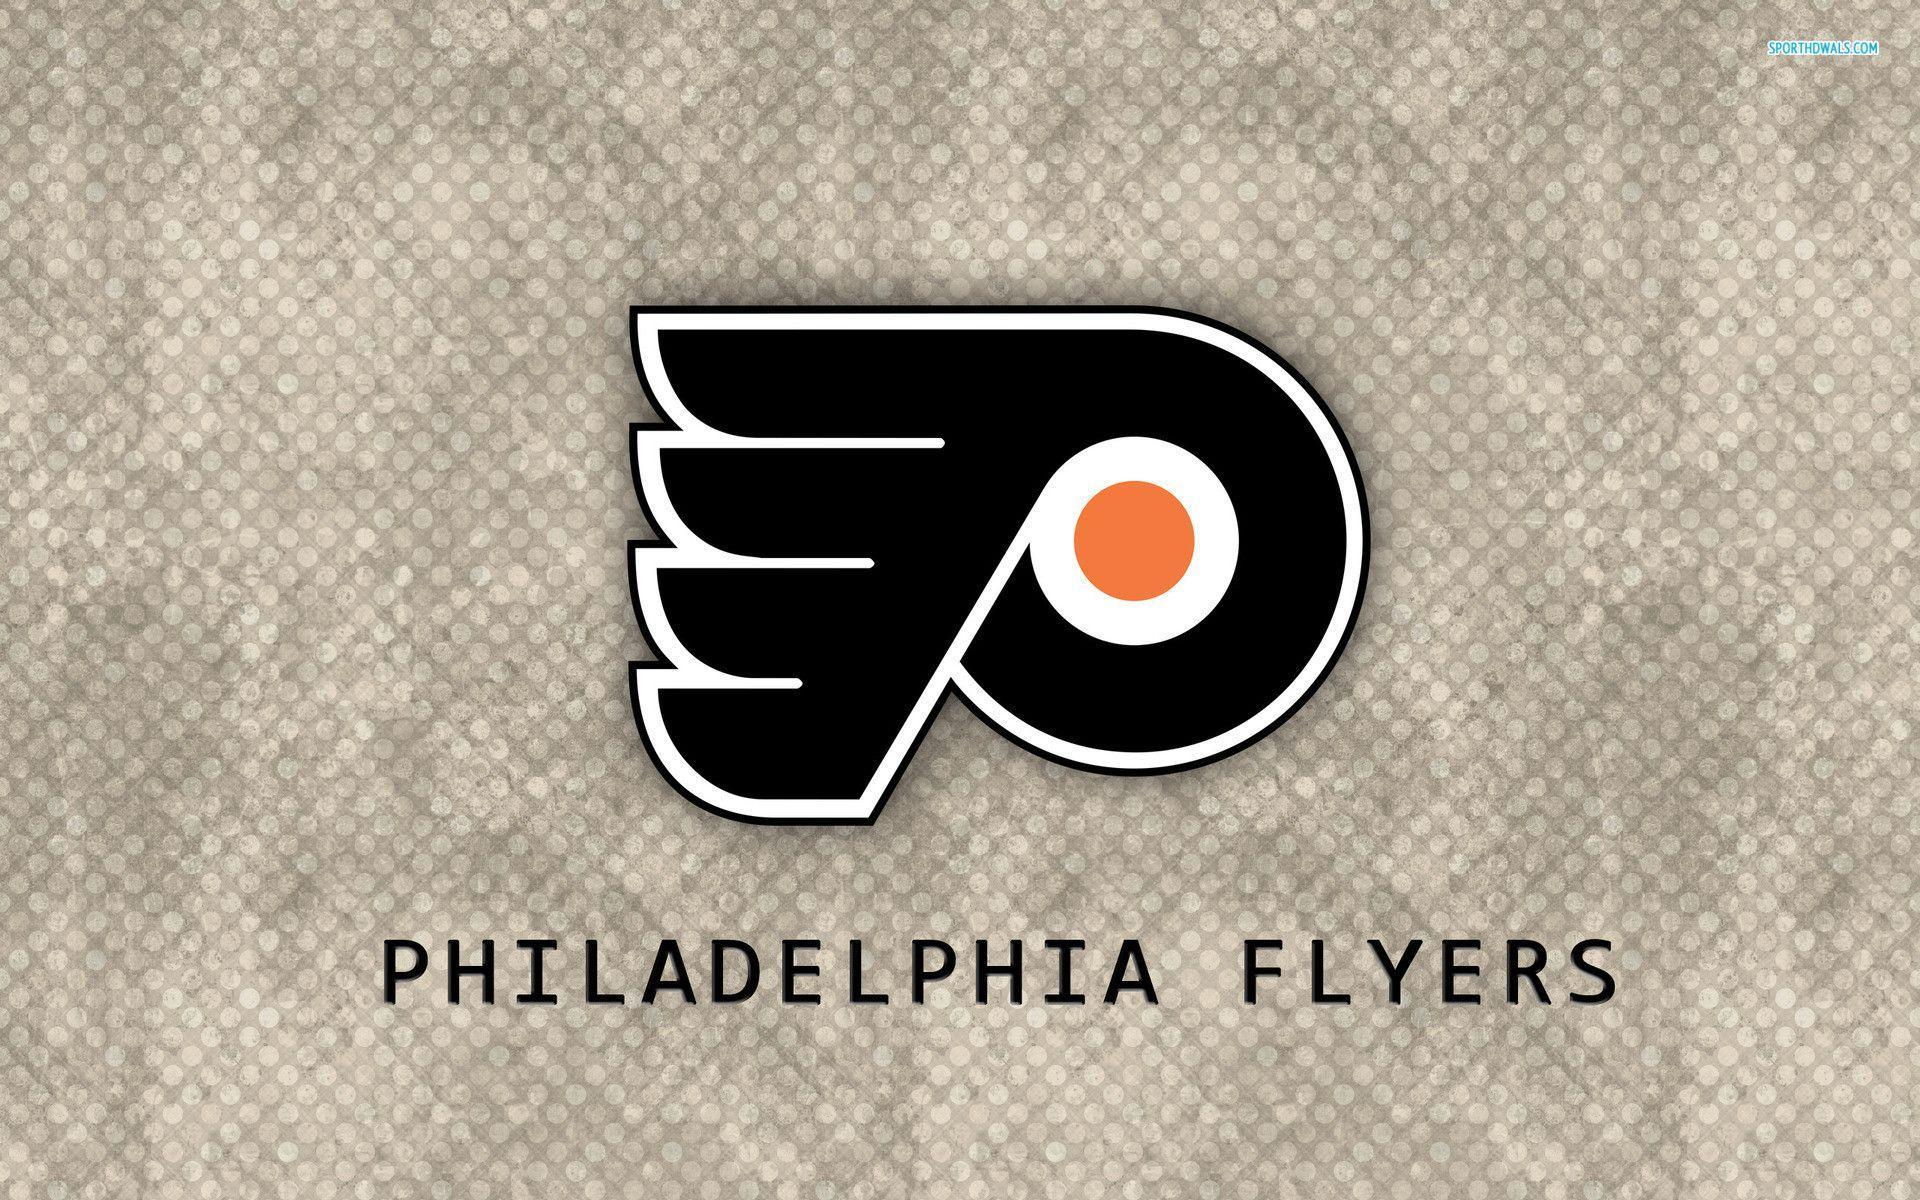 Philadelphia Flyers Desktop Wallpaper - WallpaperSafari